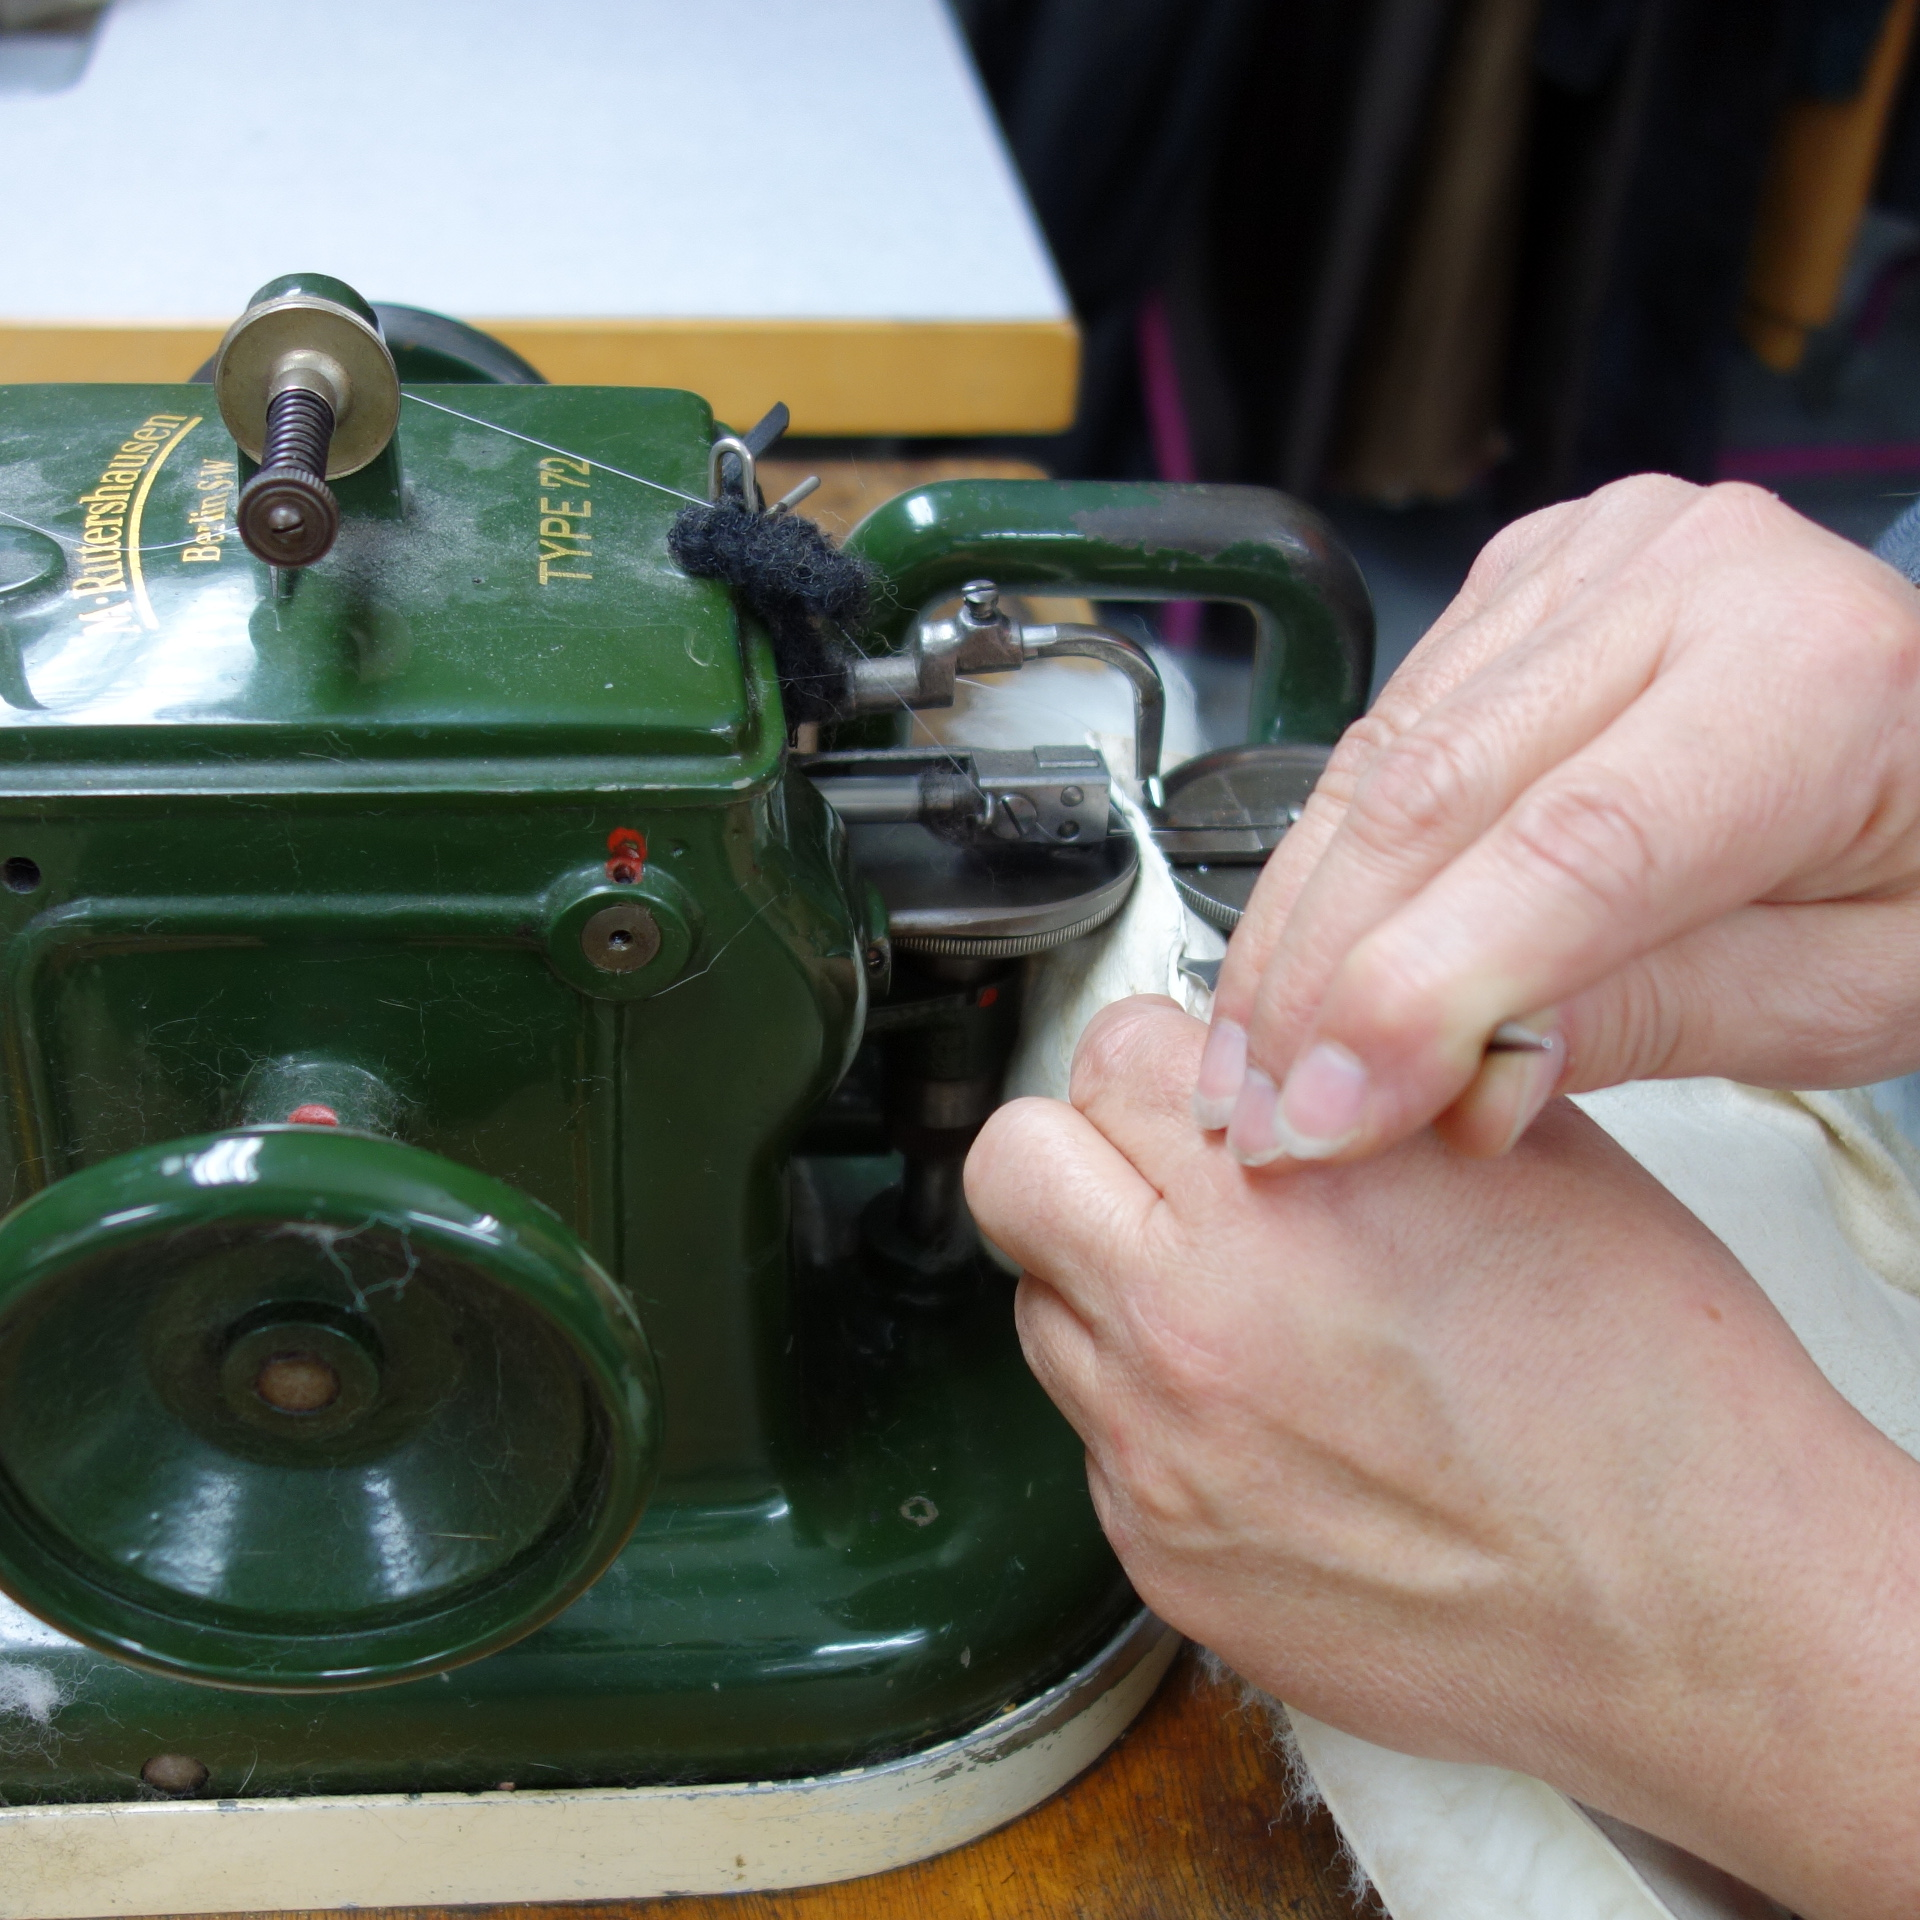 The fur sewing machine has a secret: stitching from the leather side allows for invisible seams. This makes it perfect for later retrofitting - unlike other garments. You fur coat can adapt for decades.